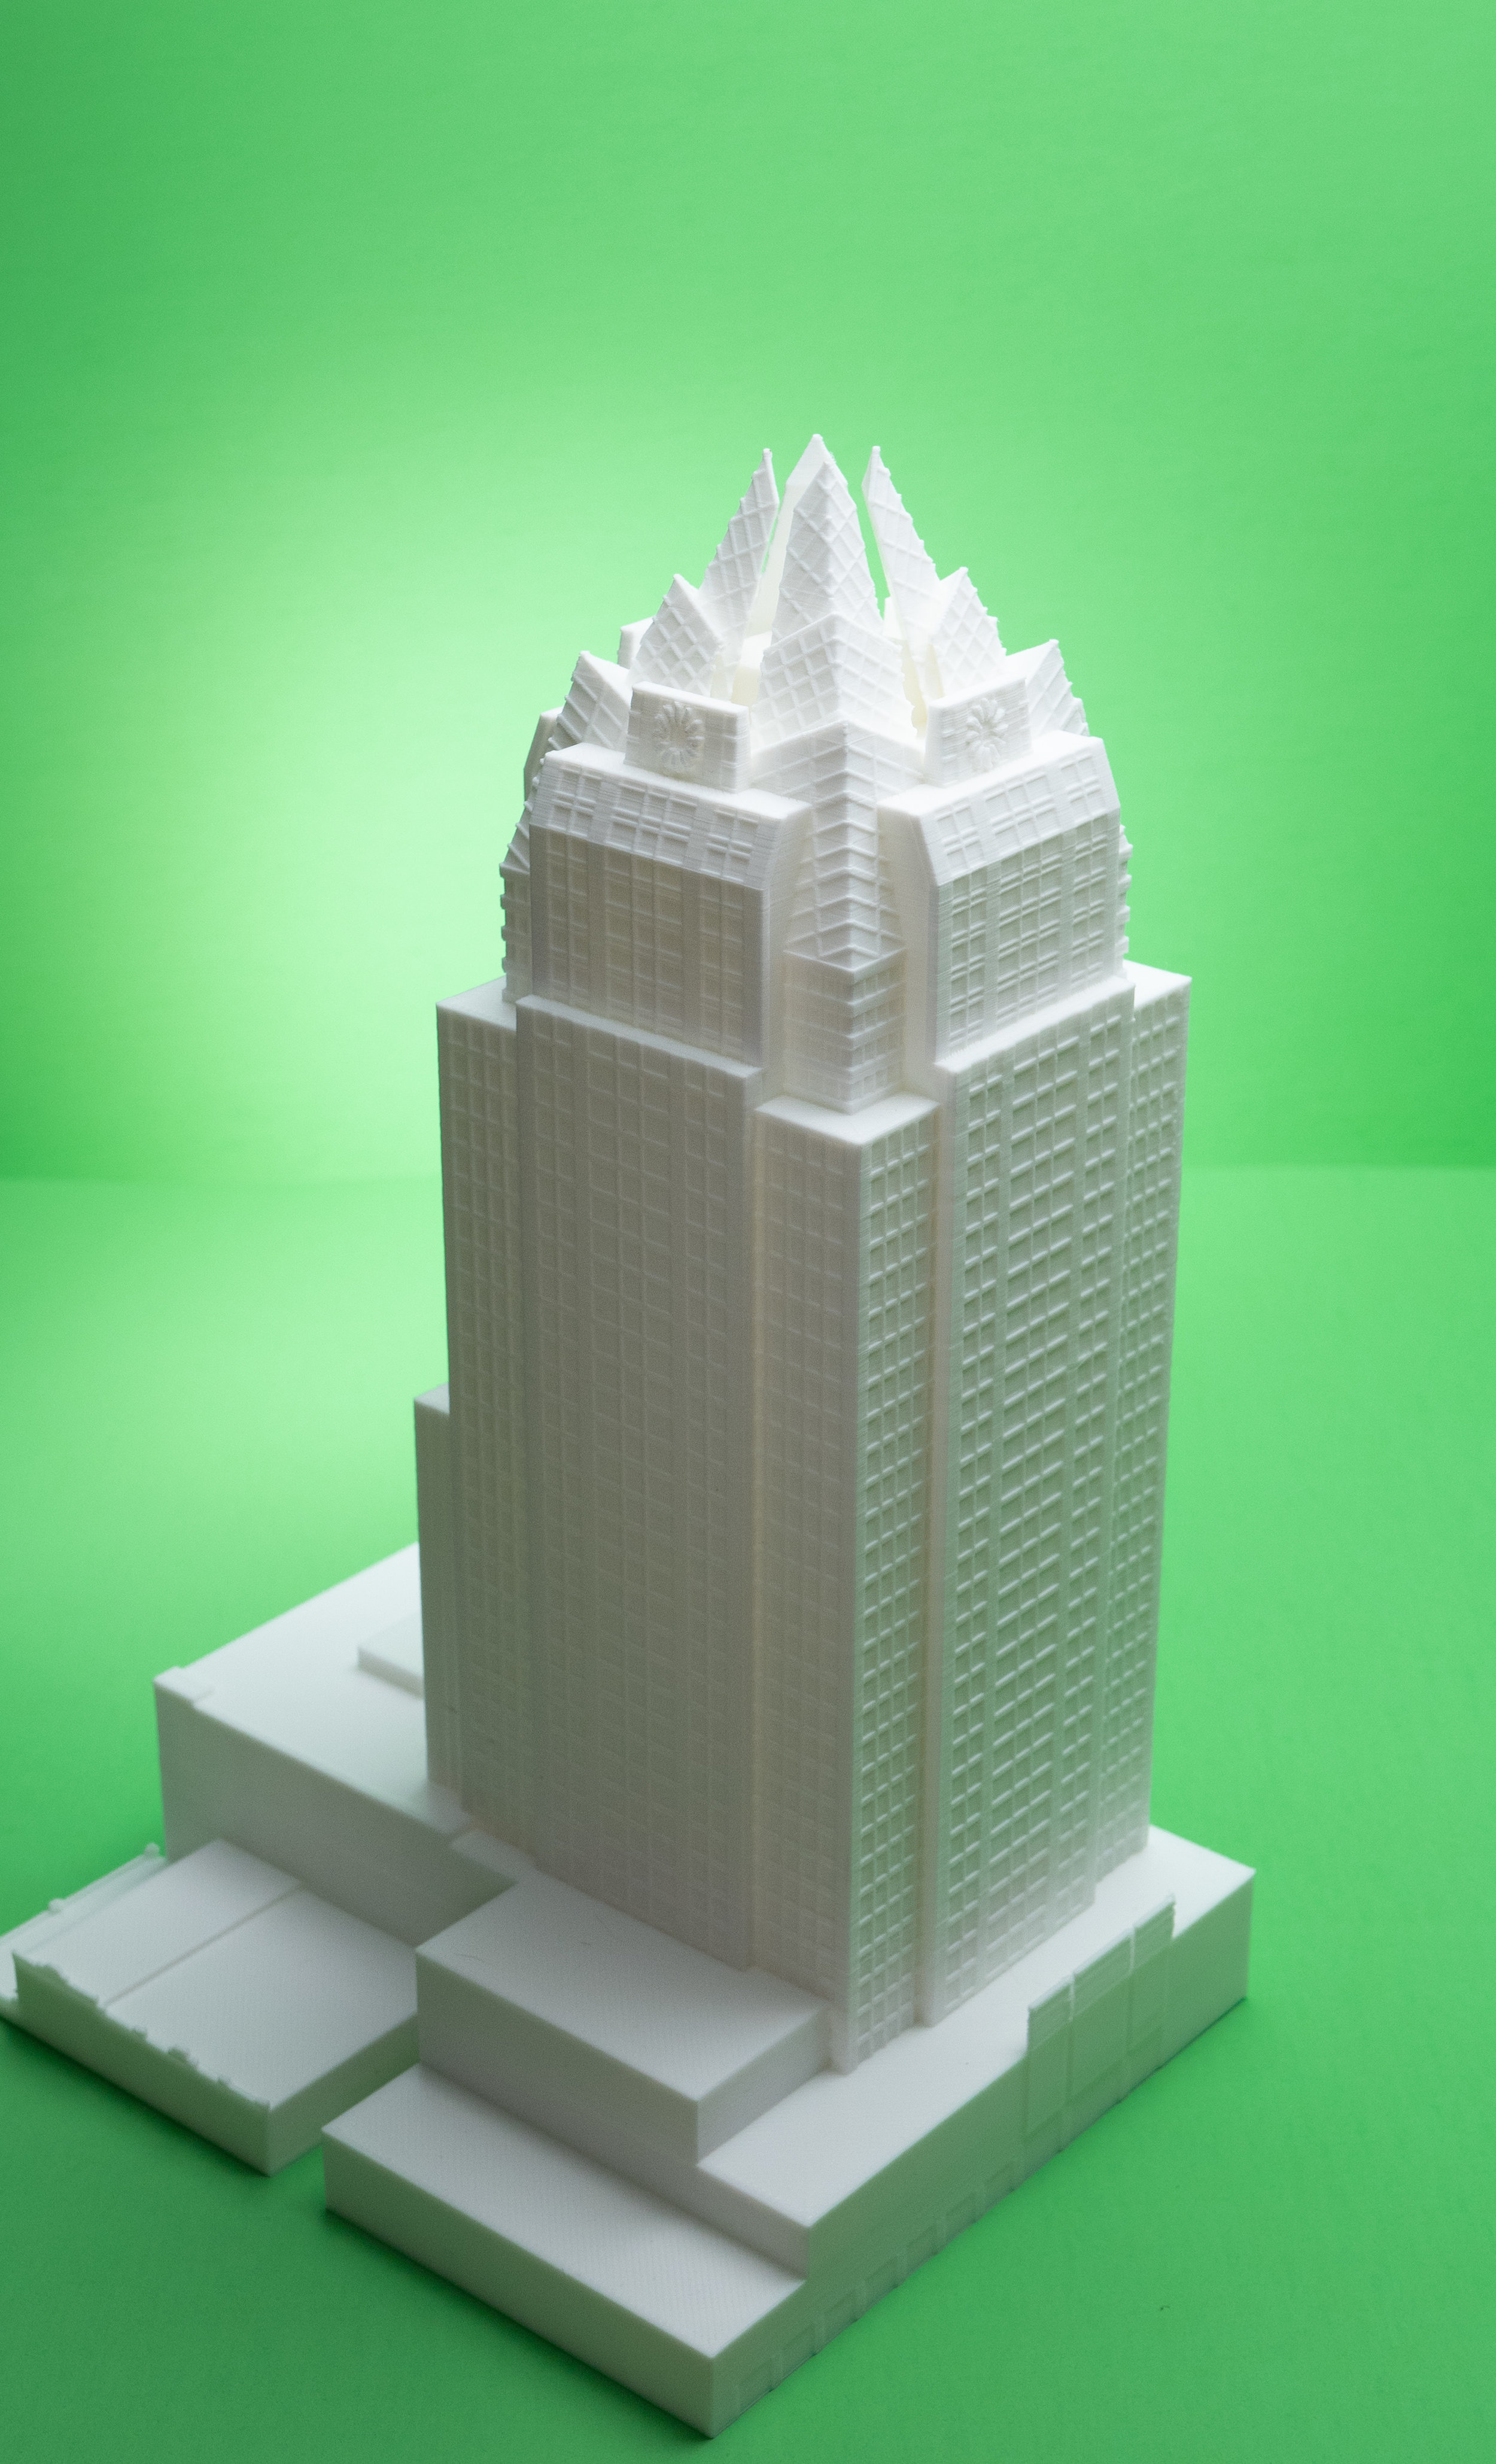 The iconic frost tower from our home town of Austin, TX.  We designed and printed this model in house.